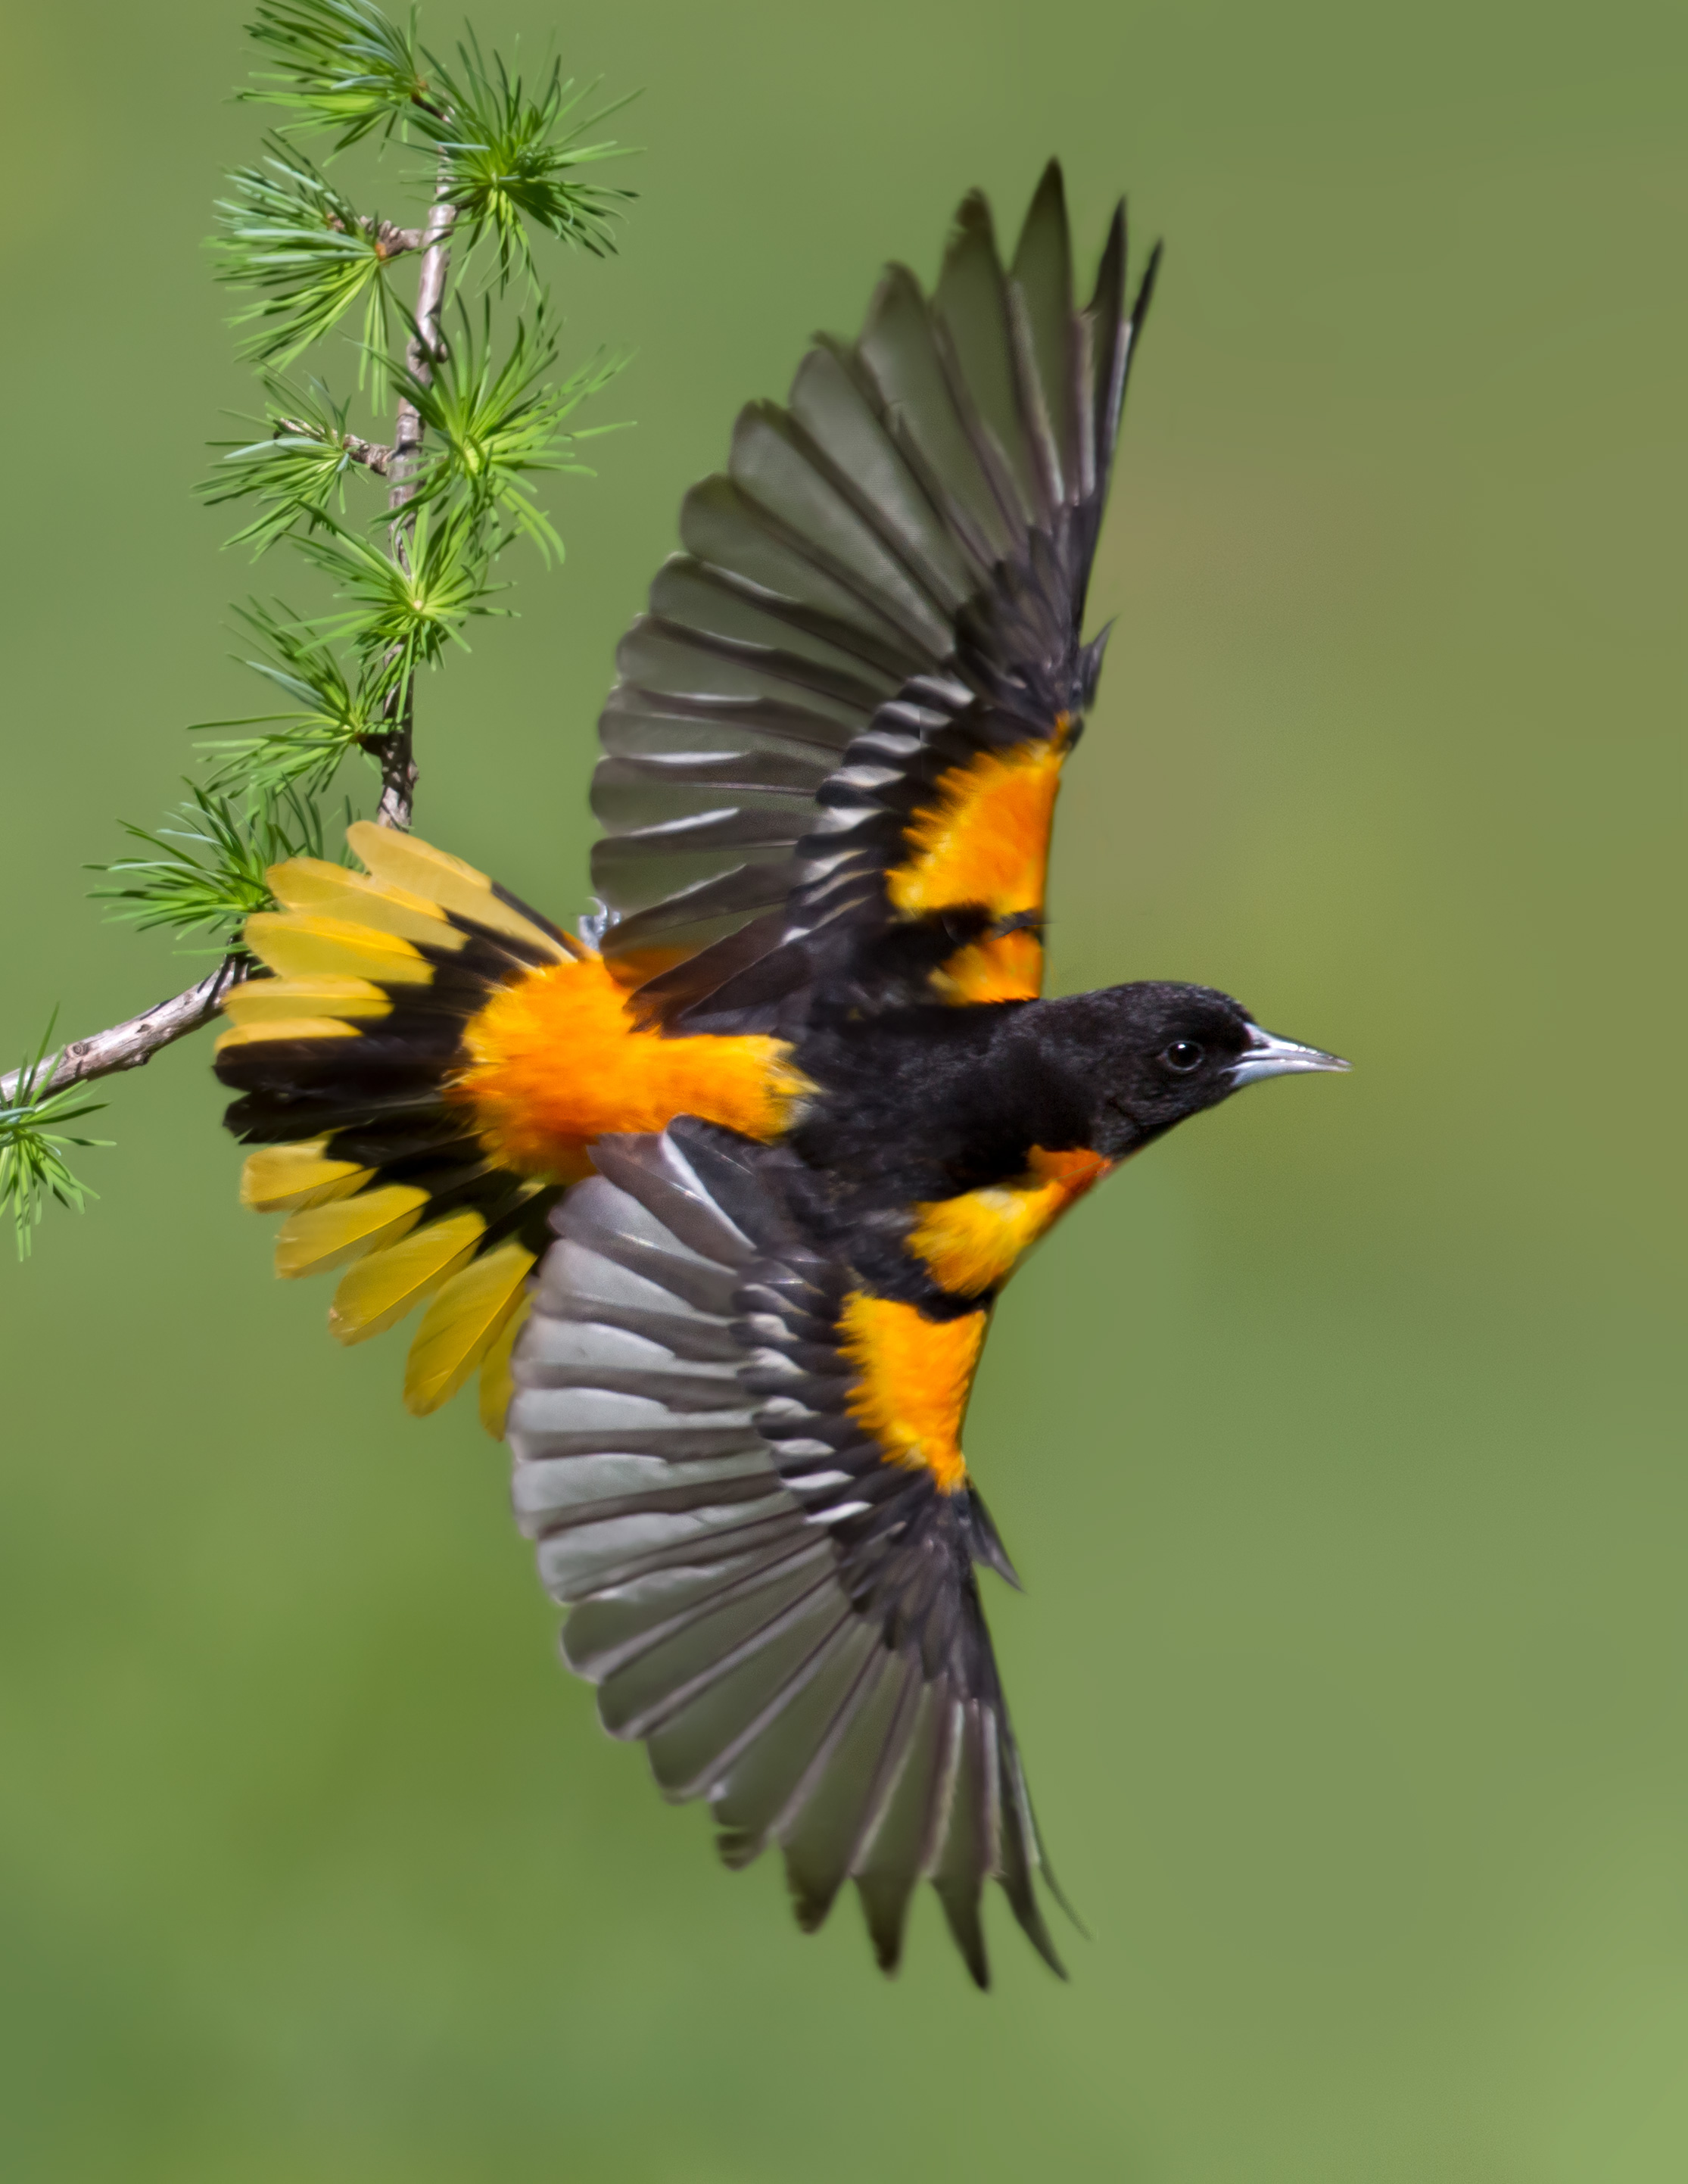 baltimore_oriole_AT0I4324b.jpg